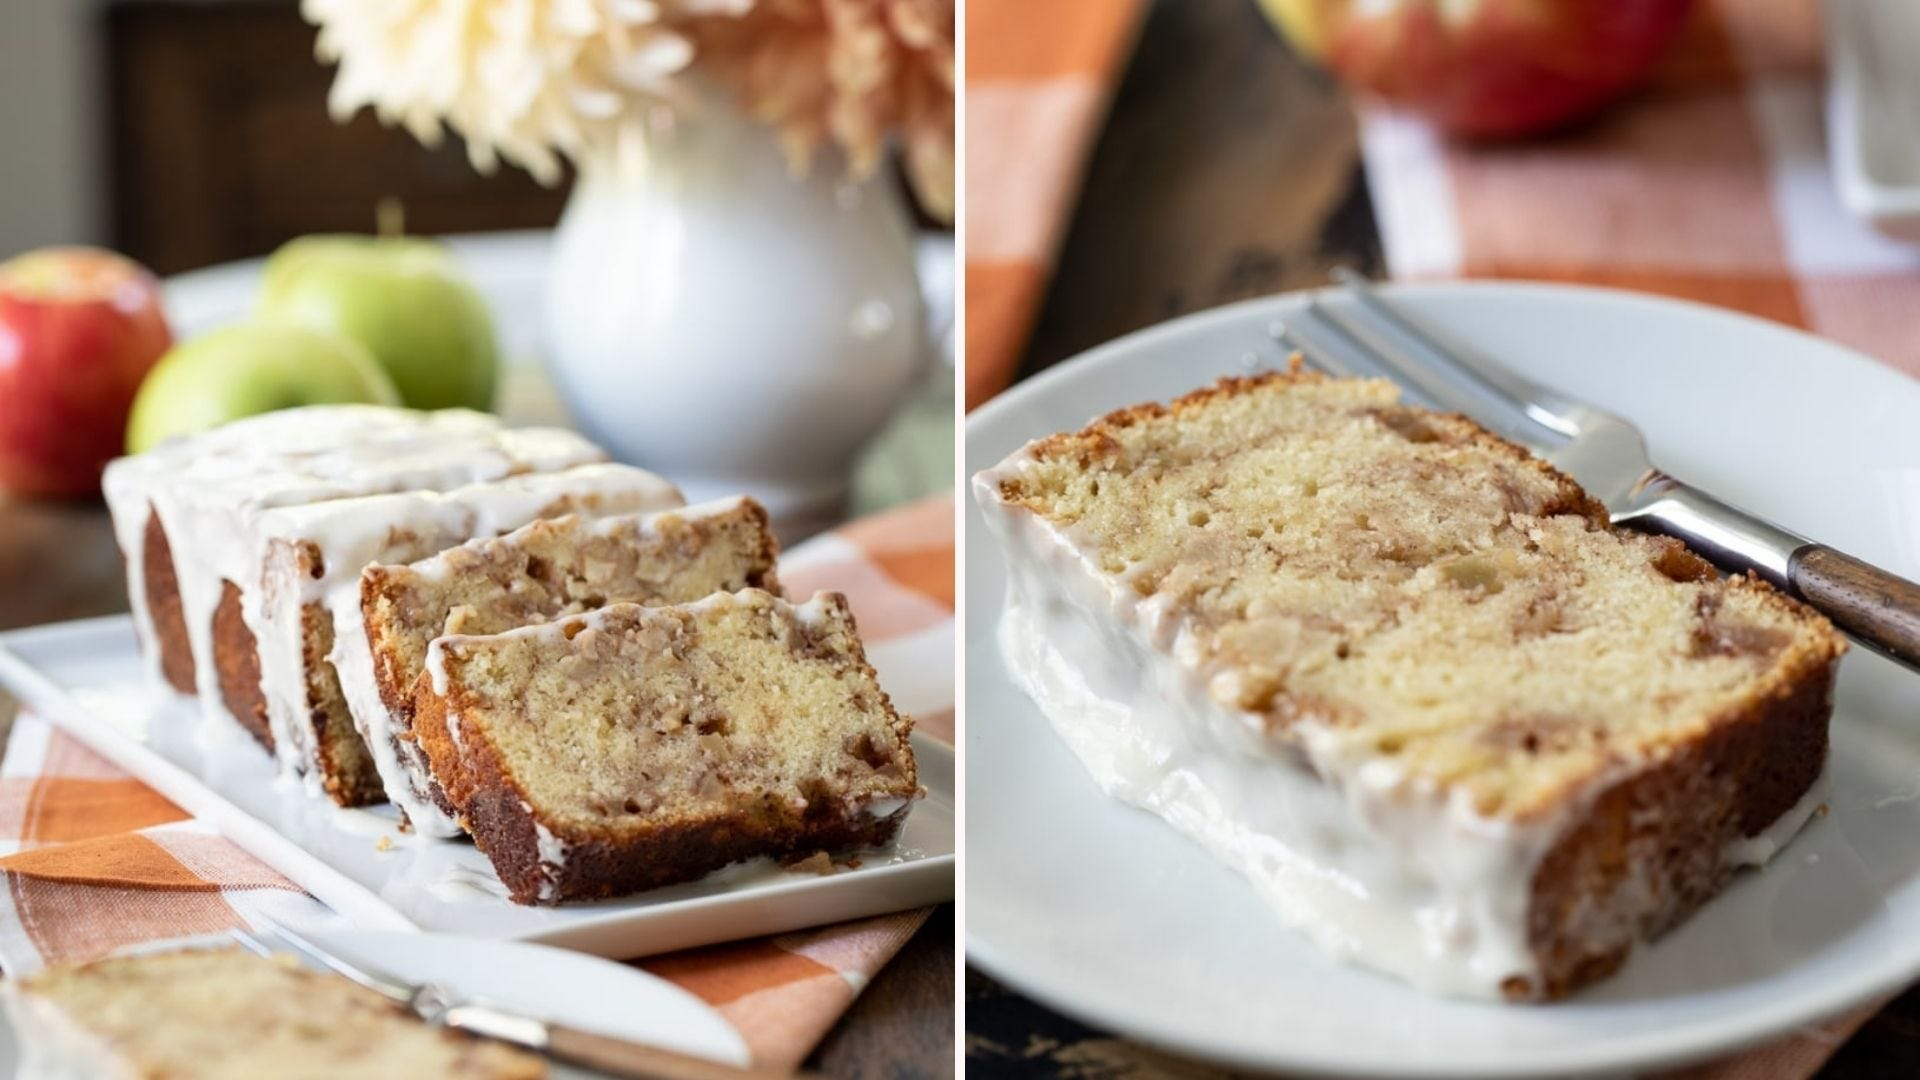 Slices of frosted apple cinnamon loaf